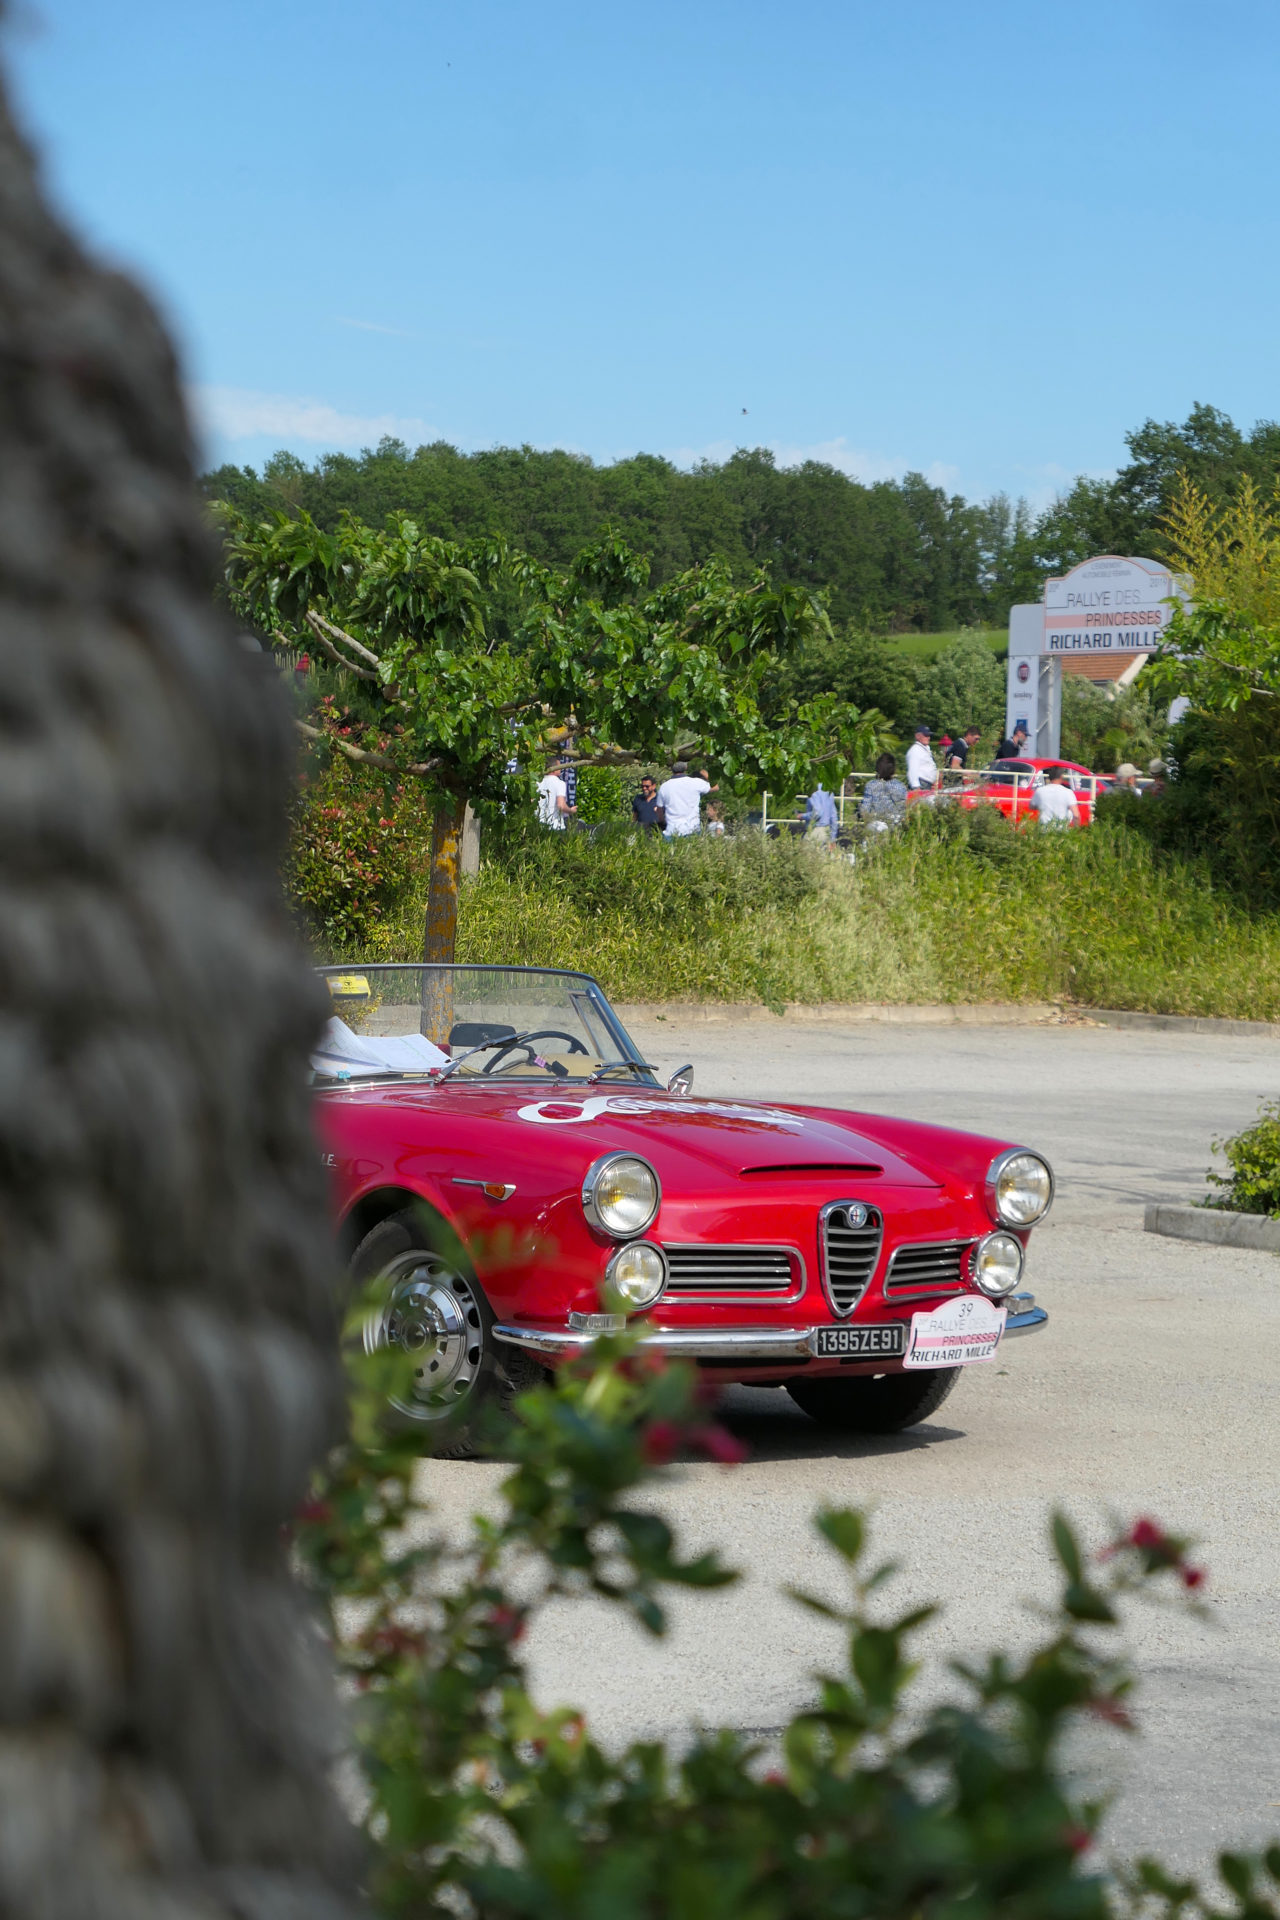 roadrugcars road rug cars rallye des princesses 2019 alfa romeo 2600 spider touring grille